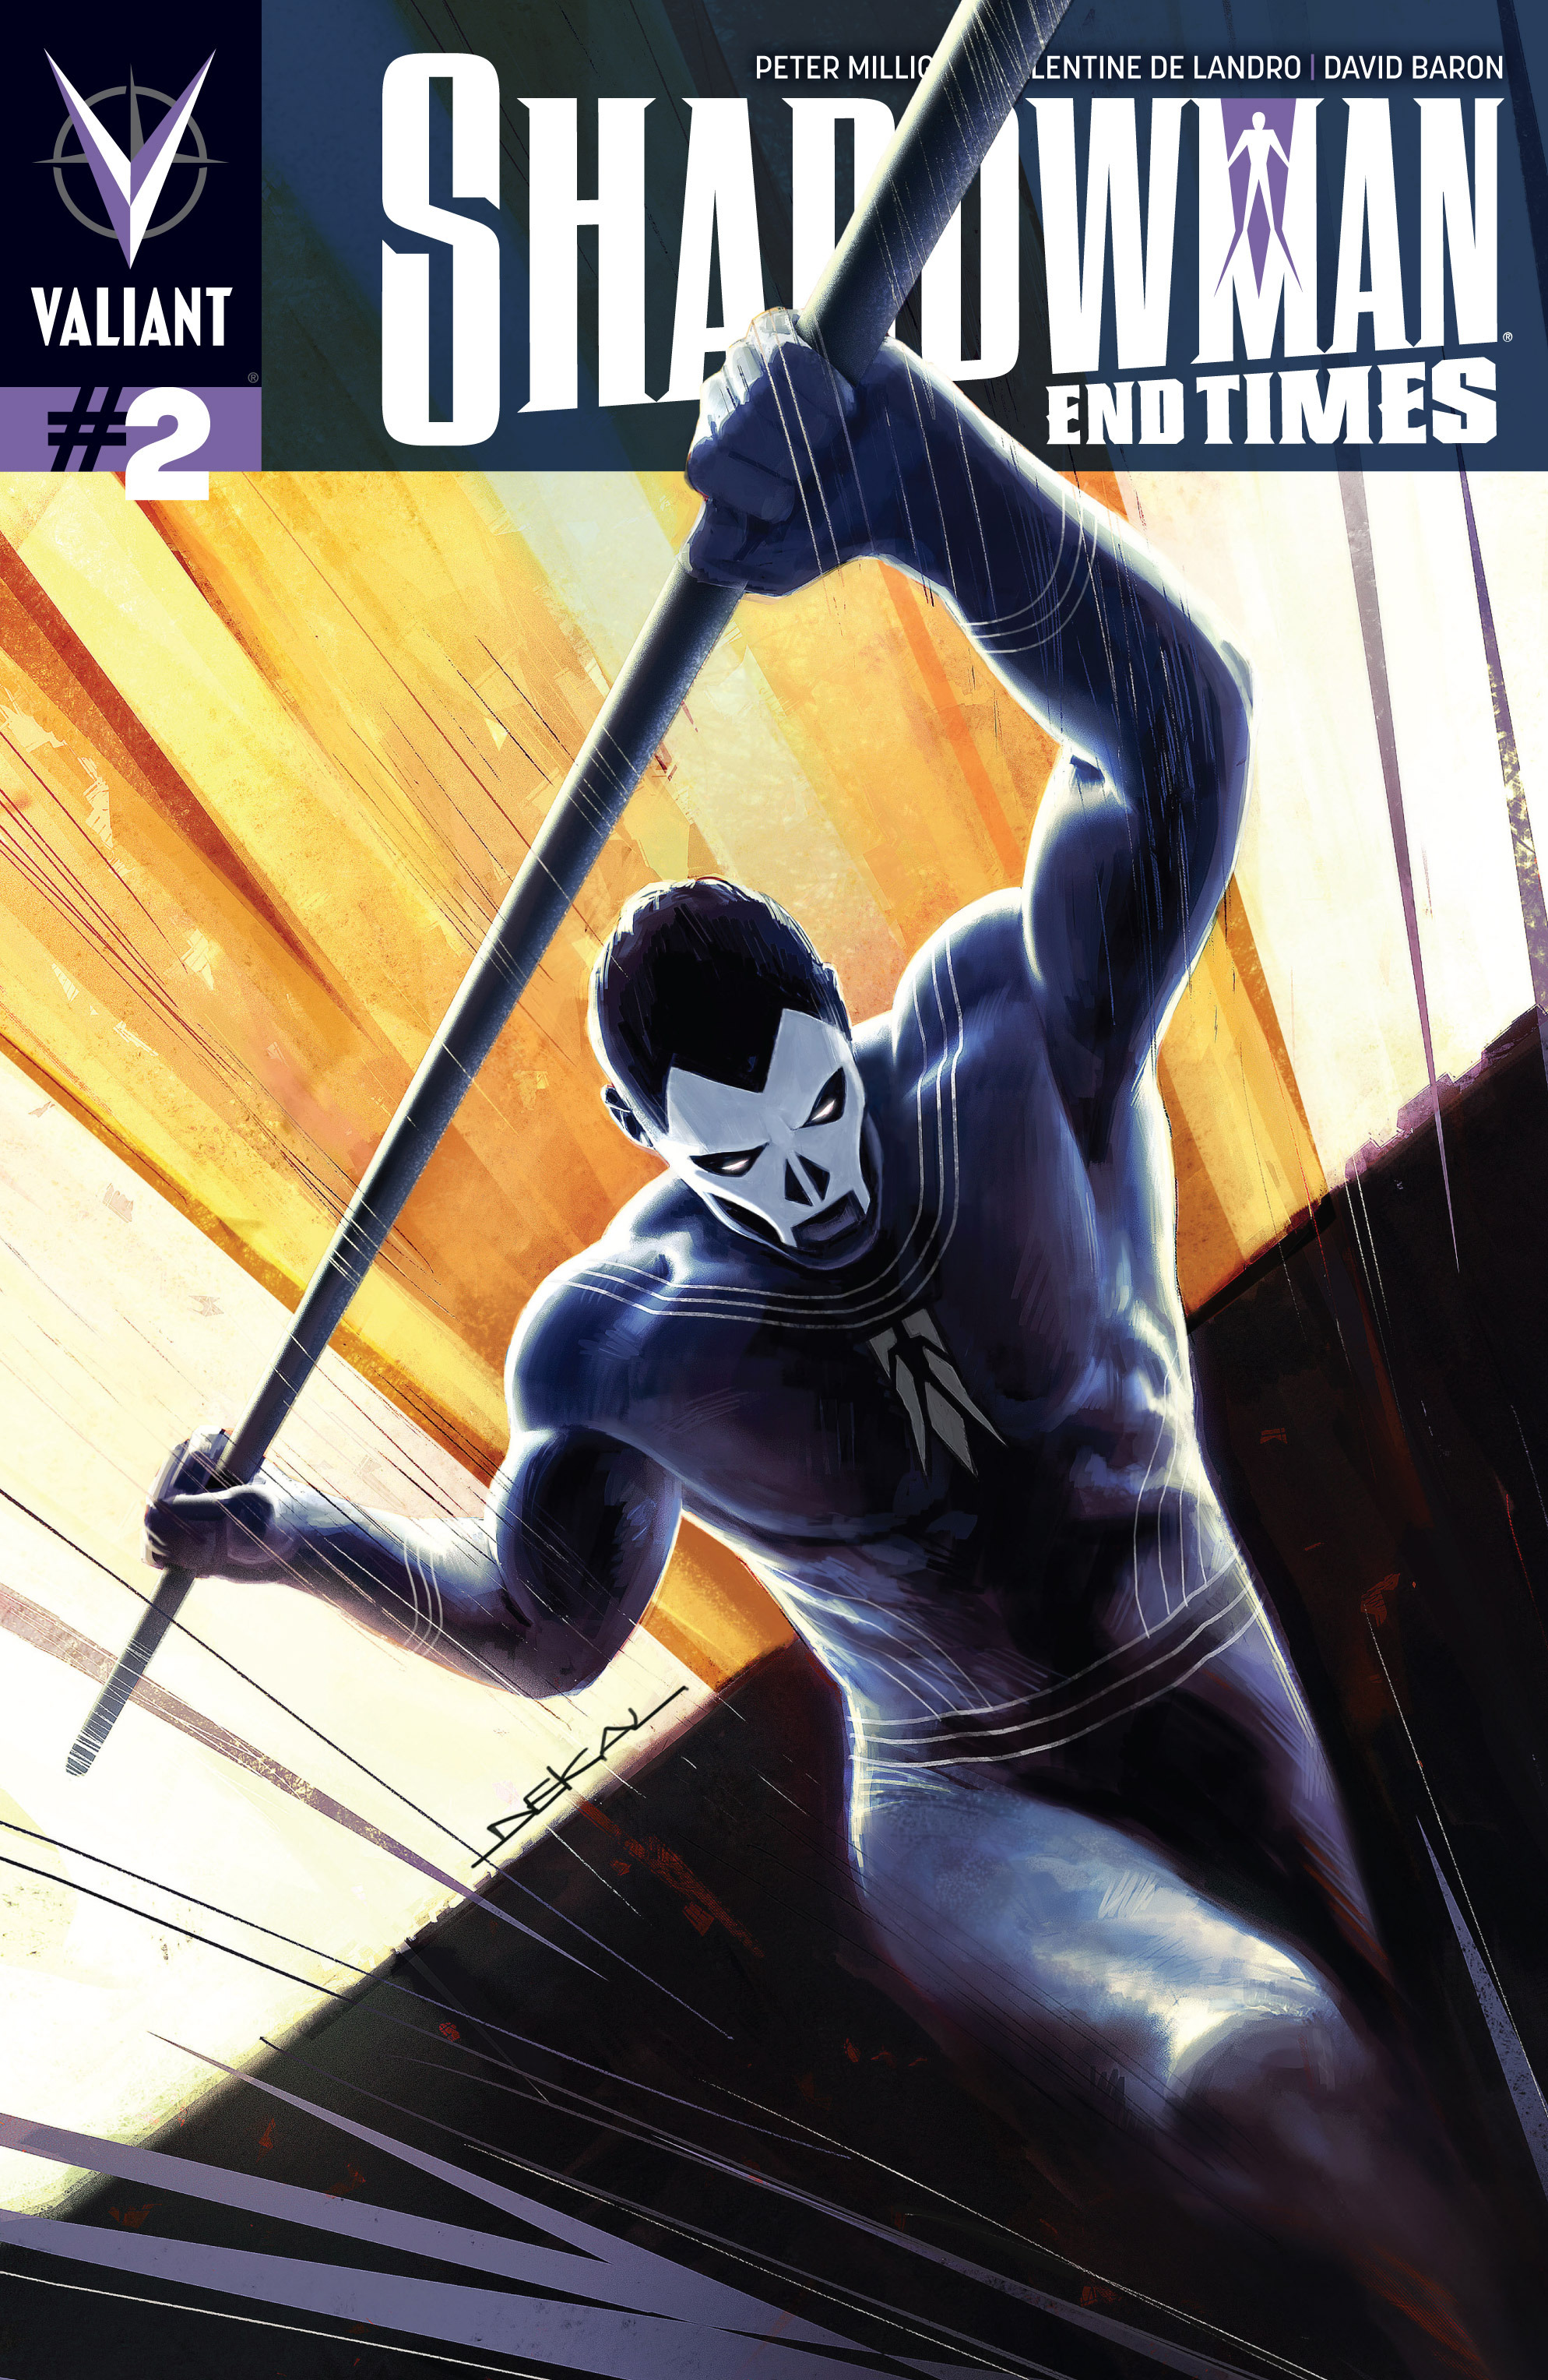 Read online Shadowman: End Times comic -  Issue #2 - 1